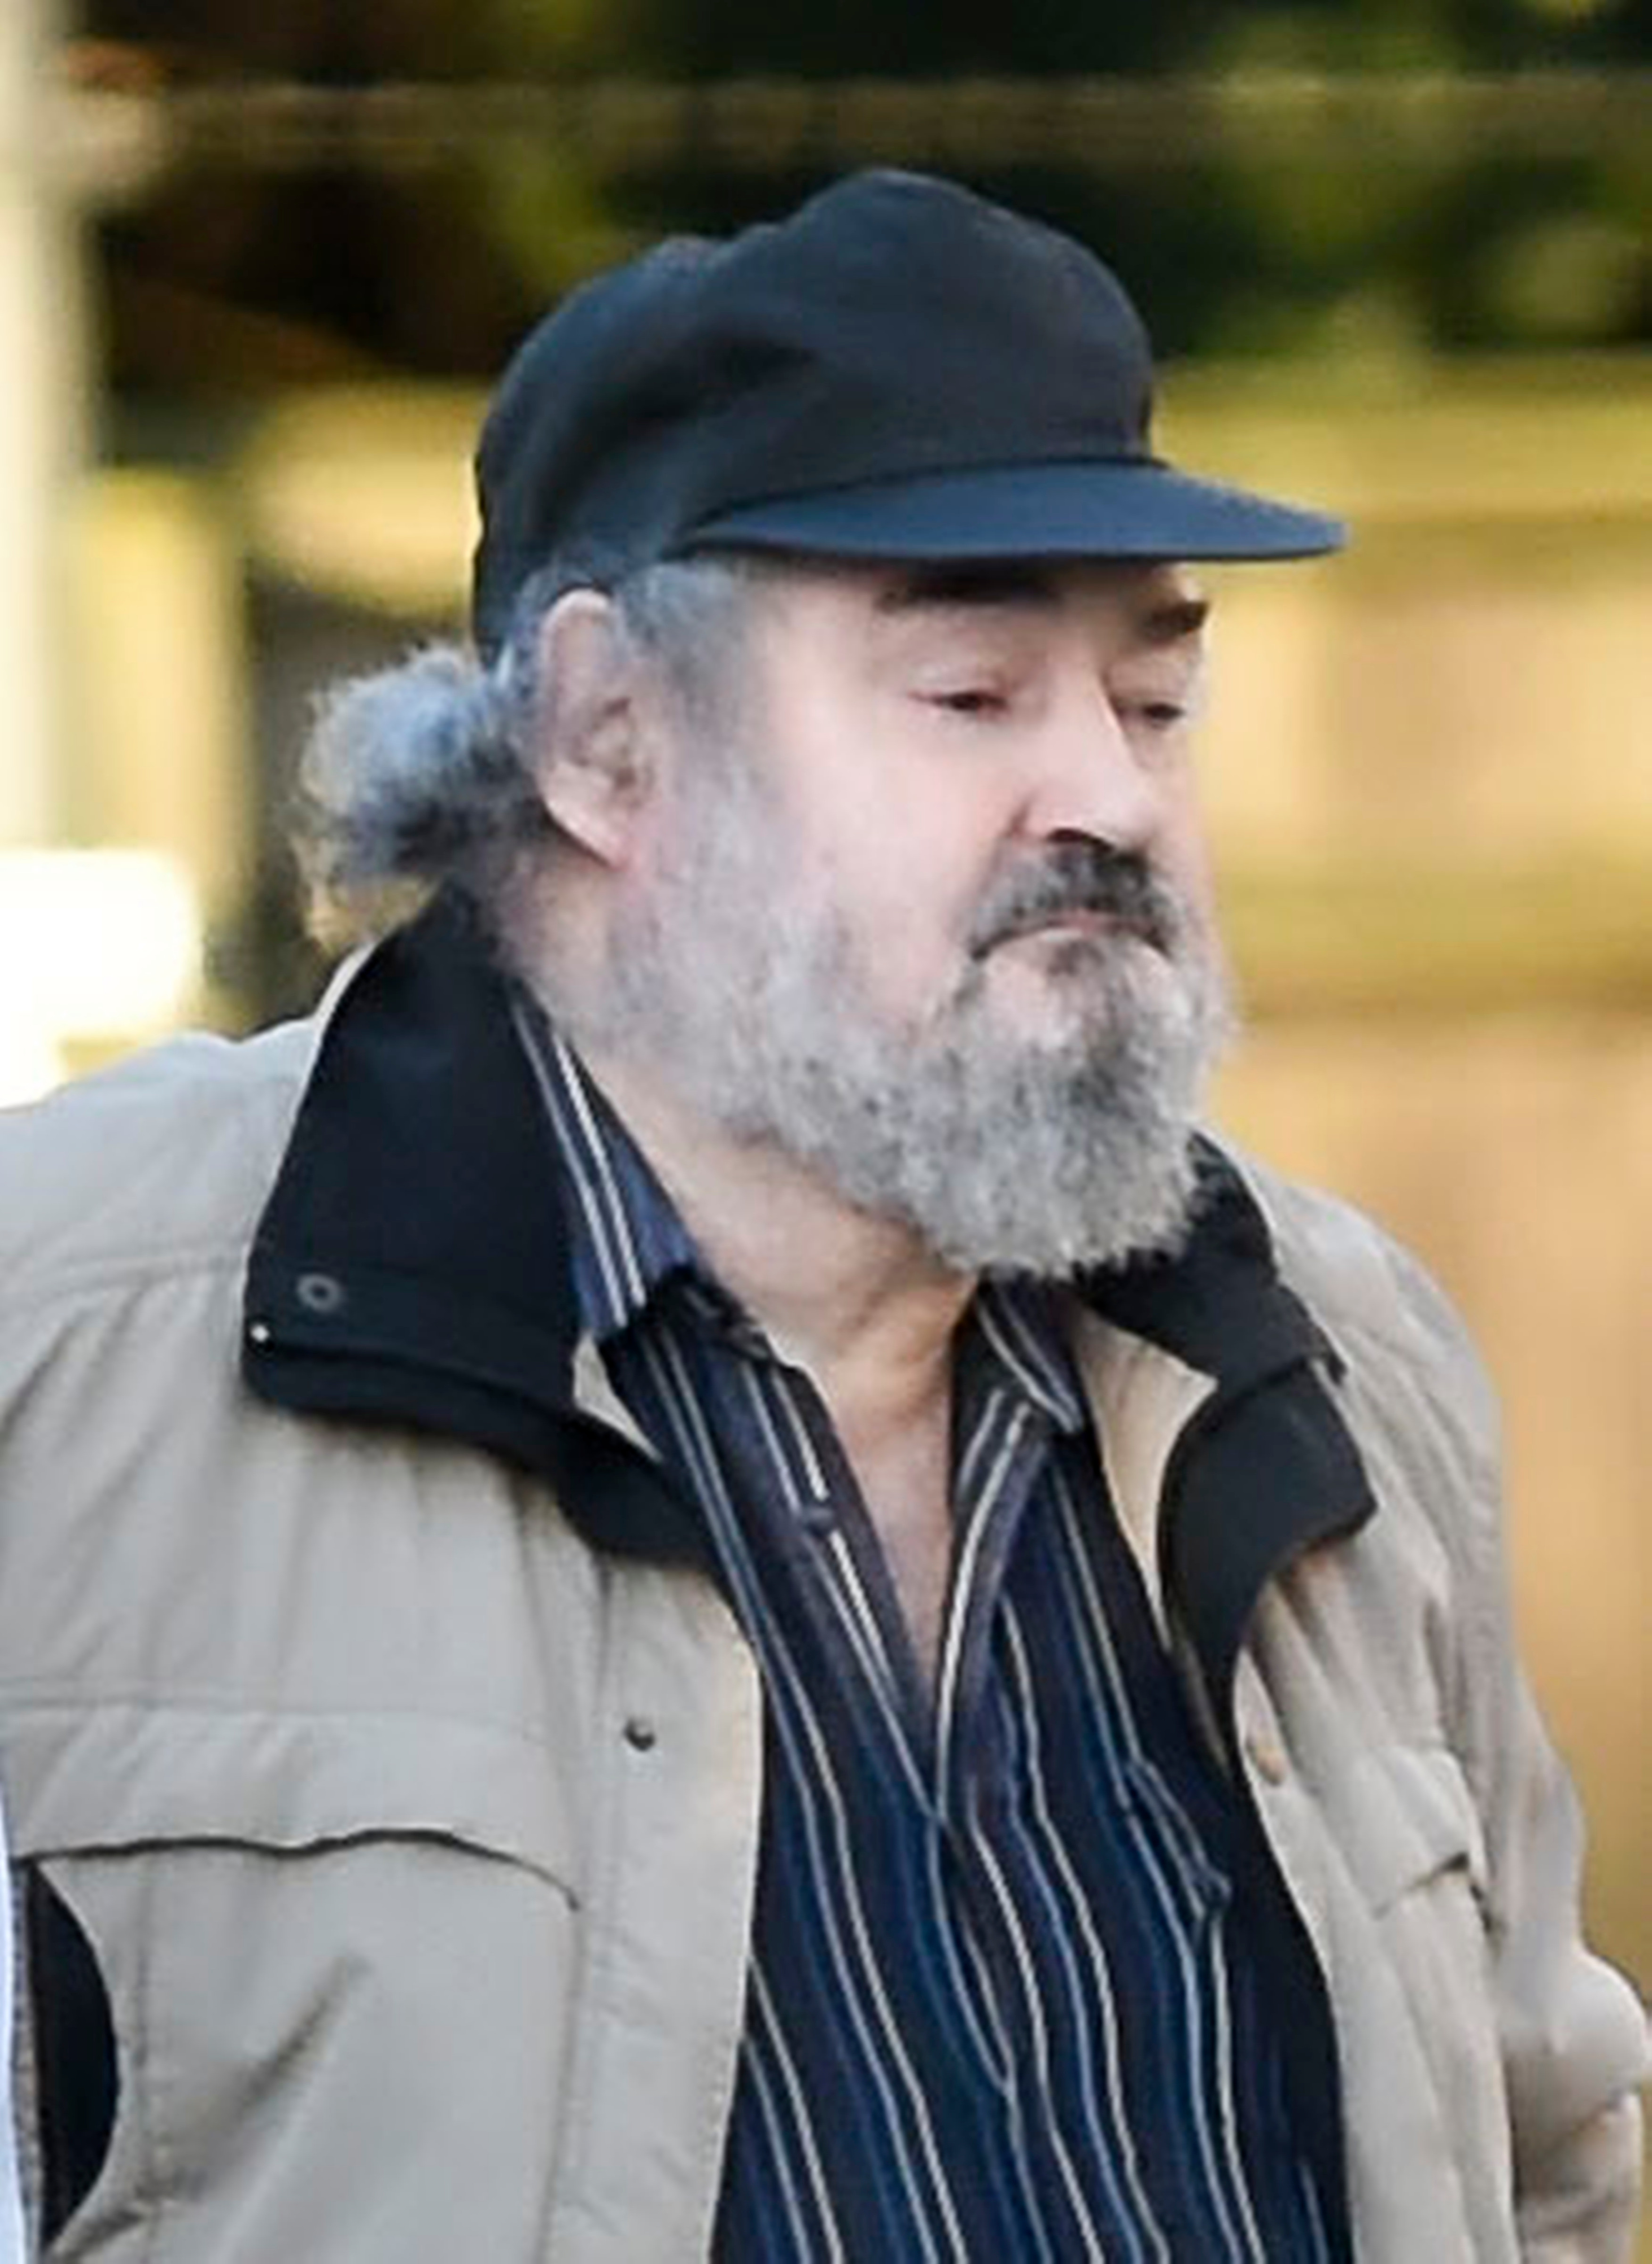 Yorkshire Ripper Peter Sutcliffe almost totally blind and needs jail 'buddy' to read to him